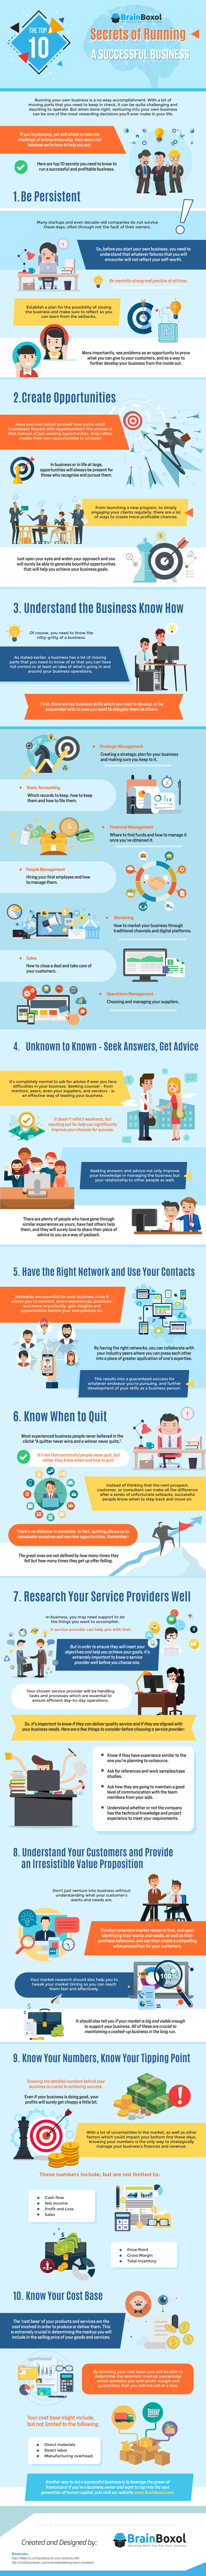 How to Run a Successful Business- Top 10 Secrets - Infographic